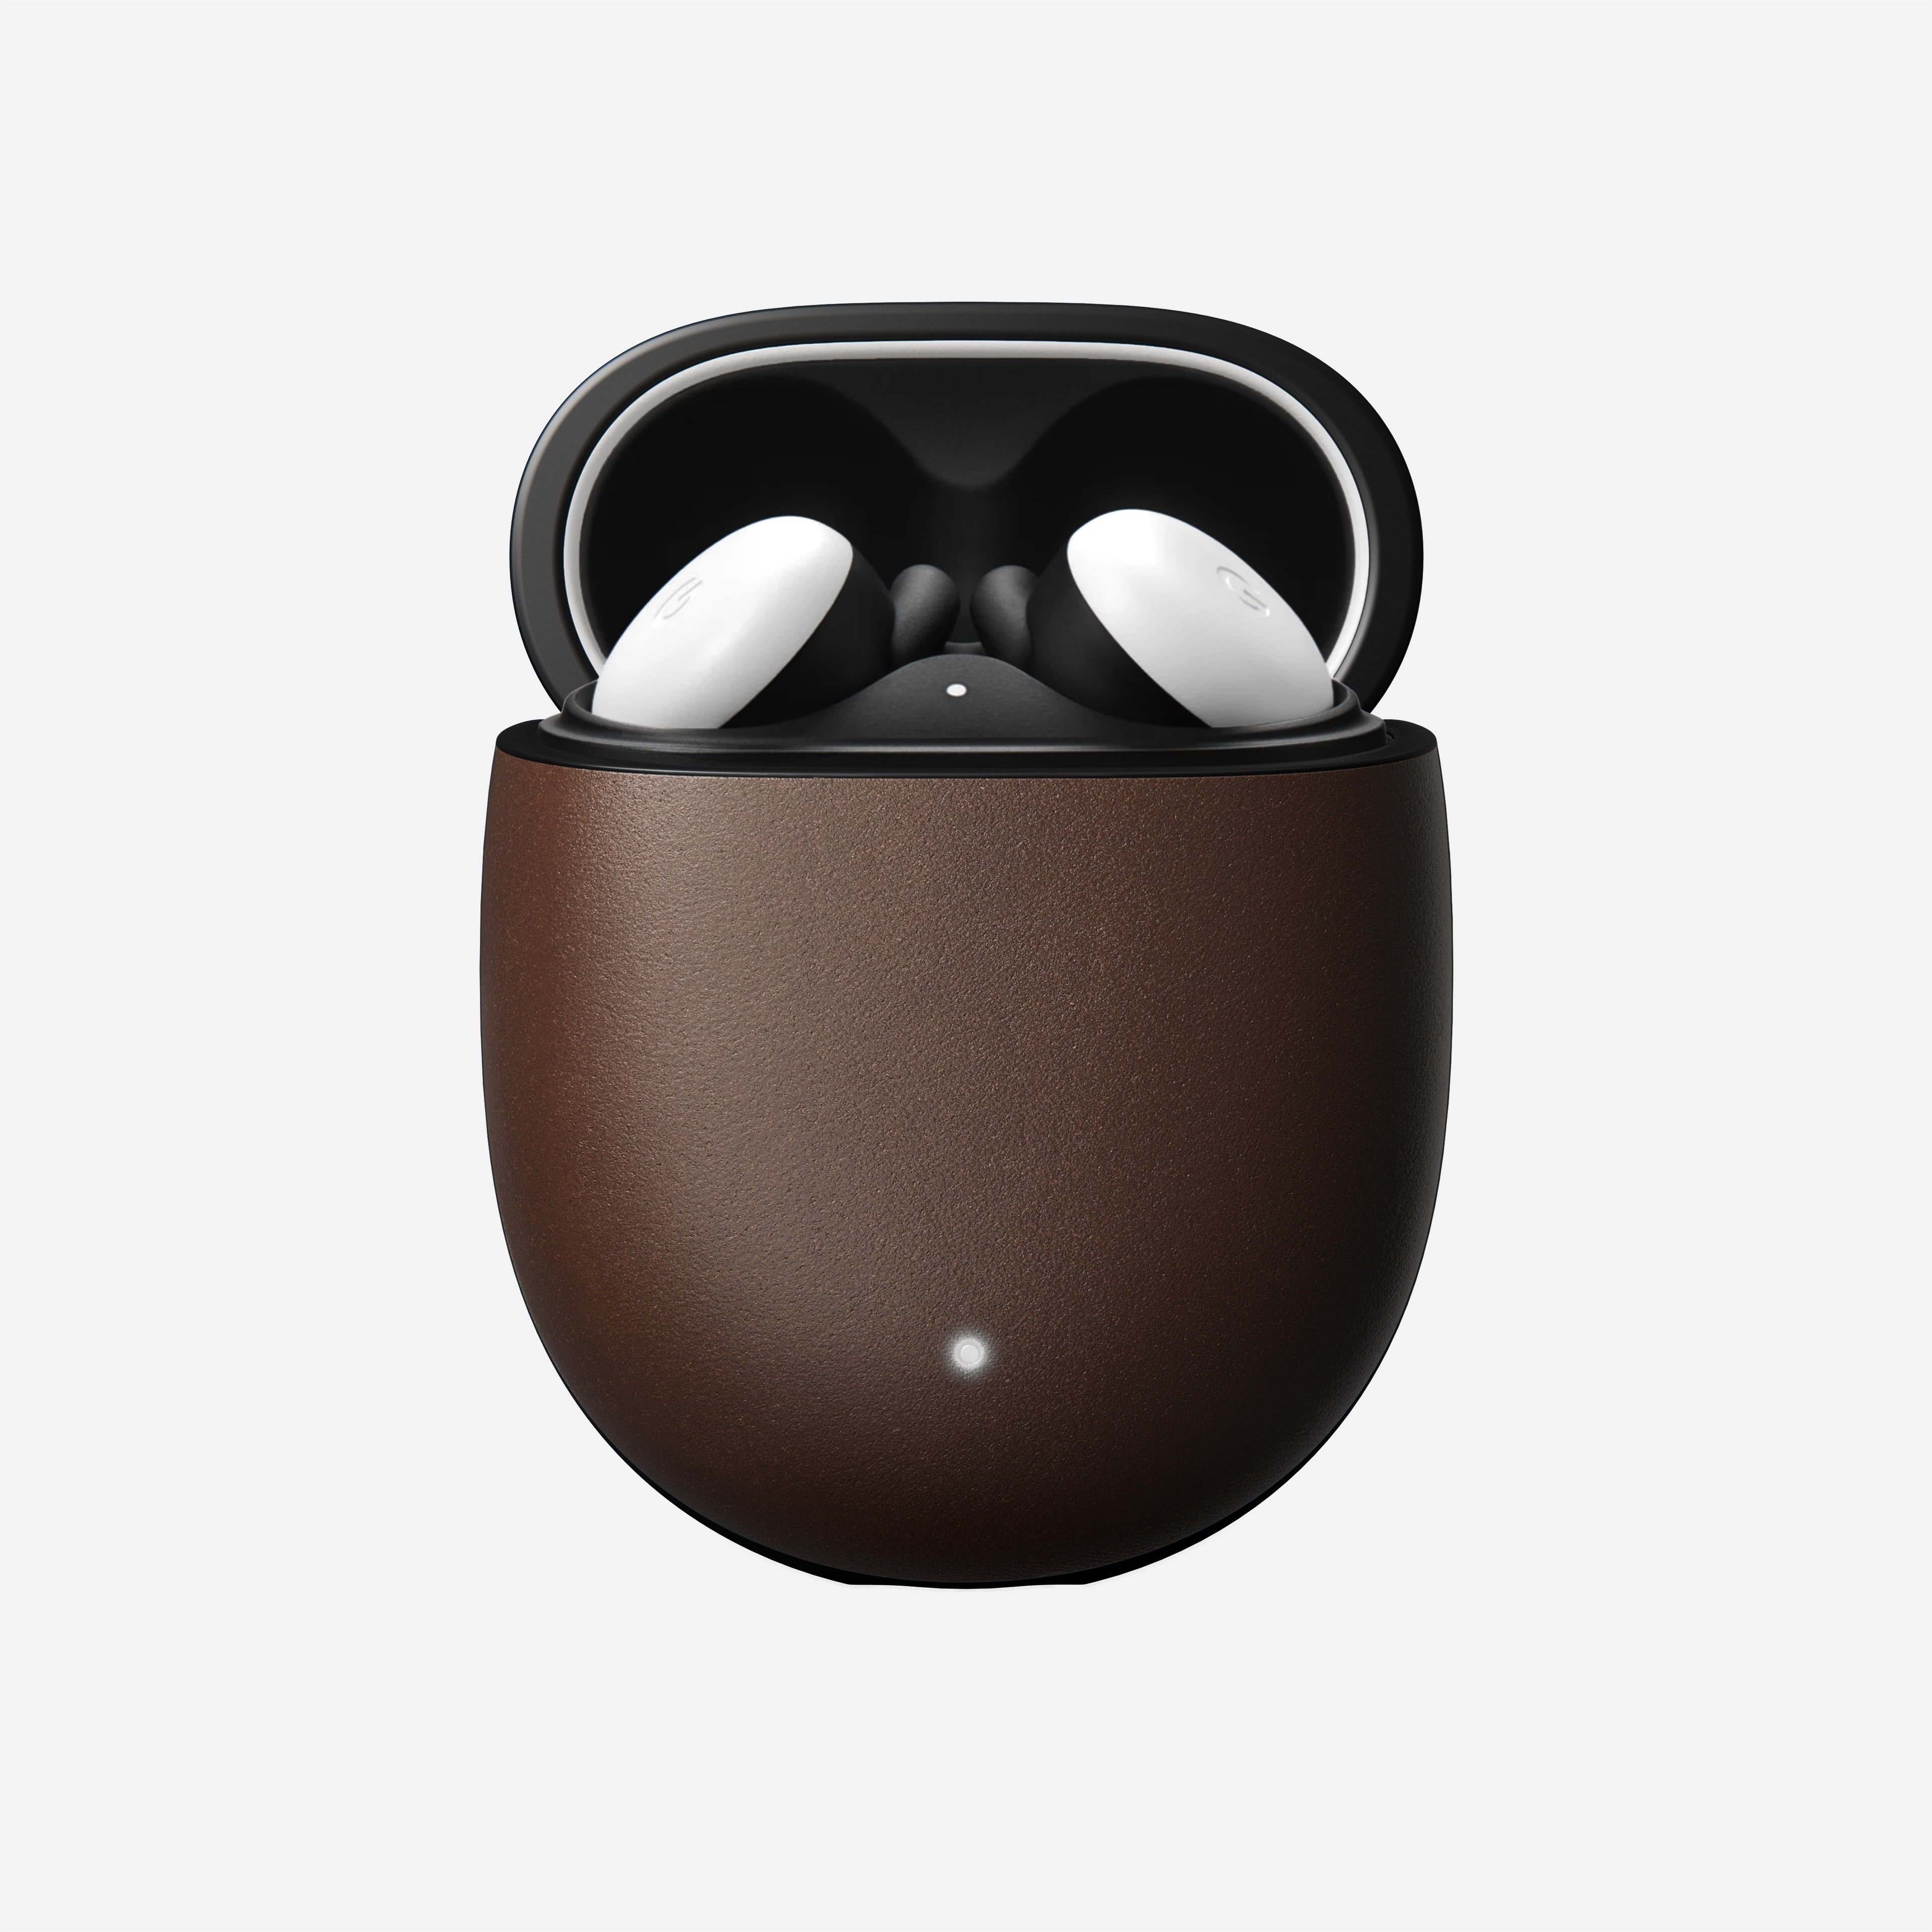 Pixel buds case rustic brown leather